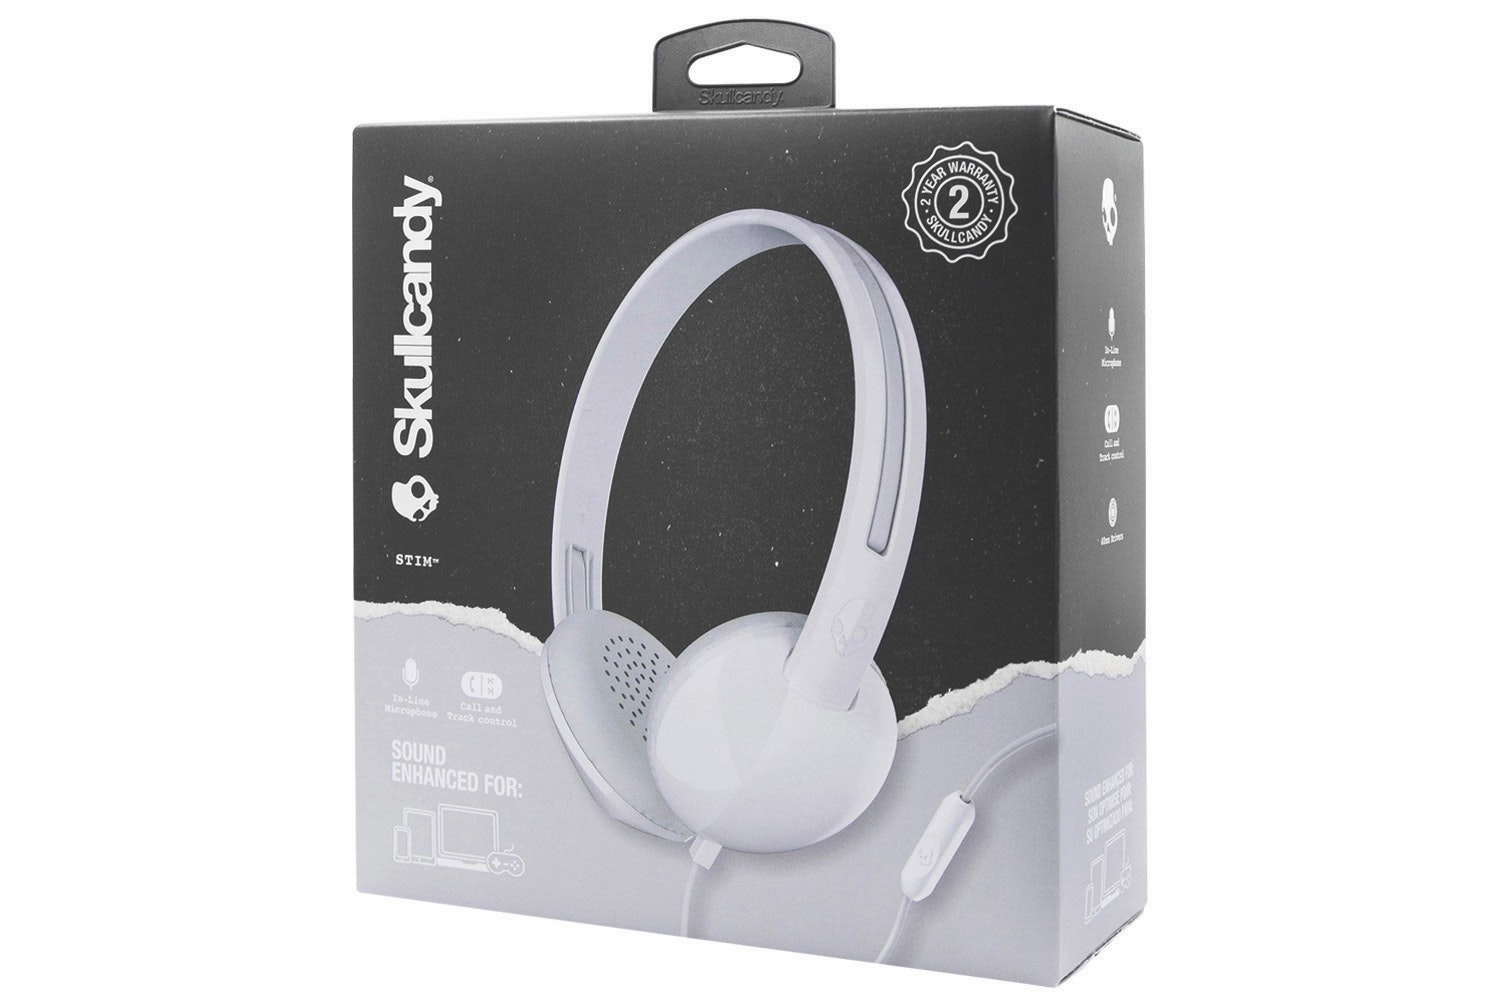 Skullcandy Stim On Ear Headphones | White & Grey